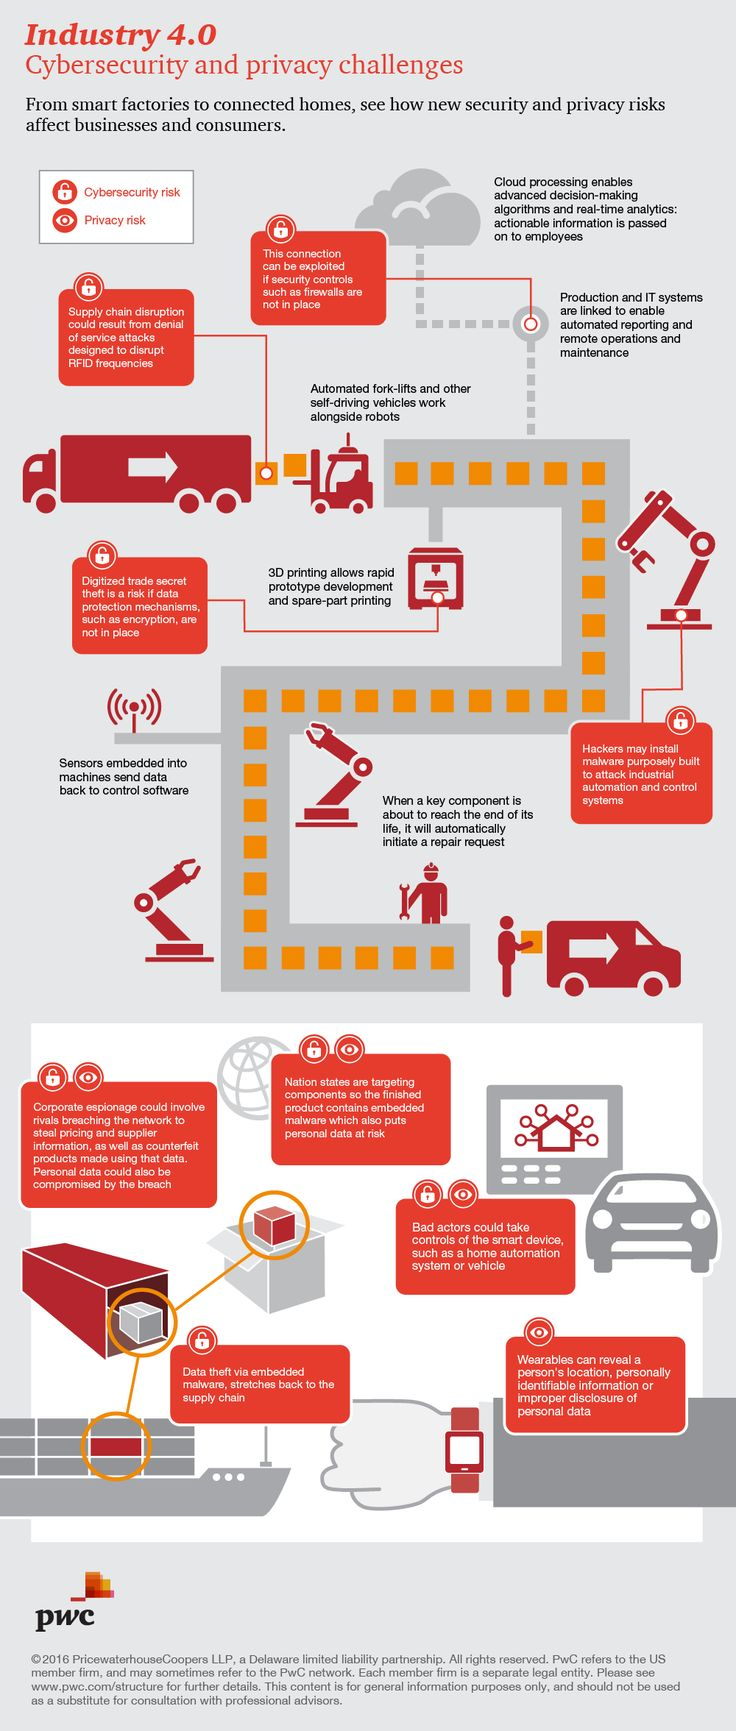 Cybersecurity and privacy risks of Industry 4.0